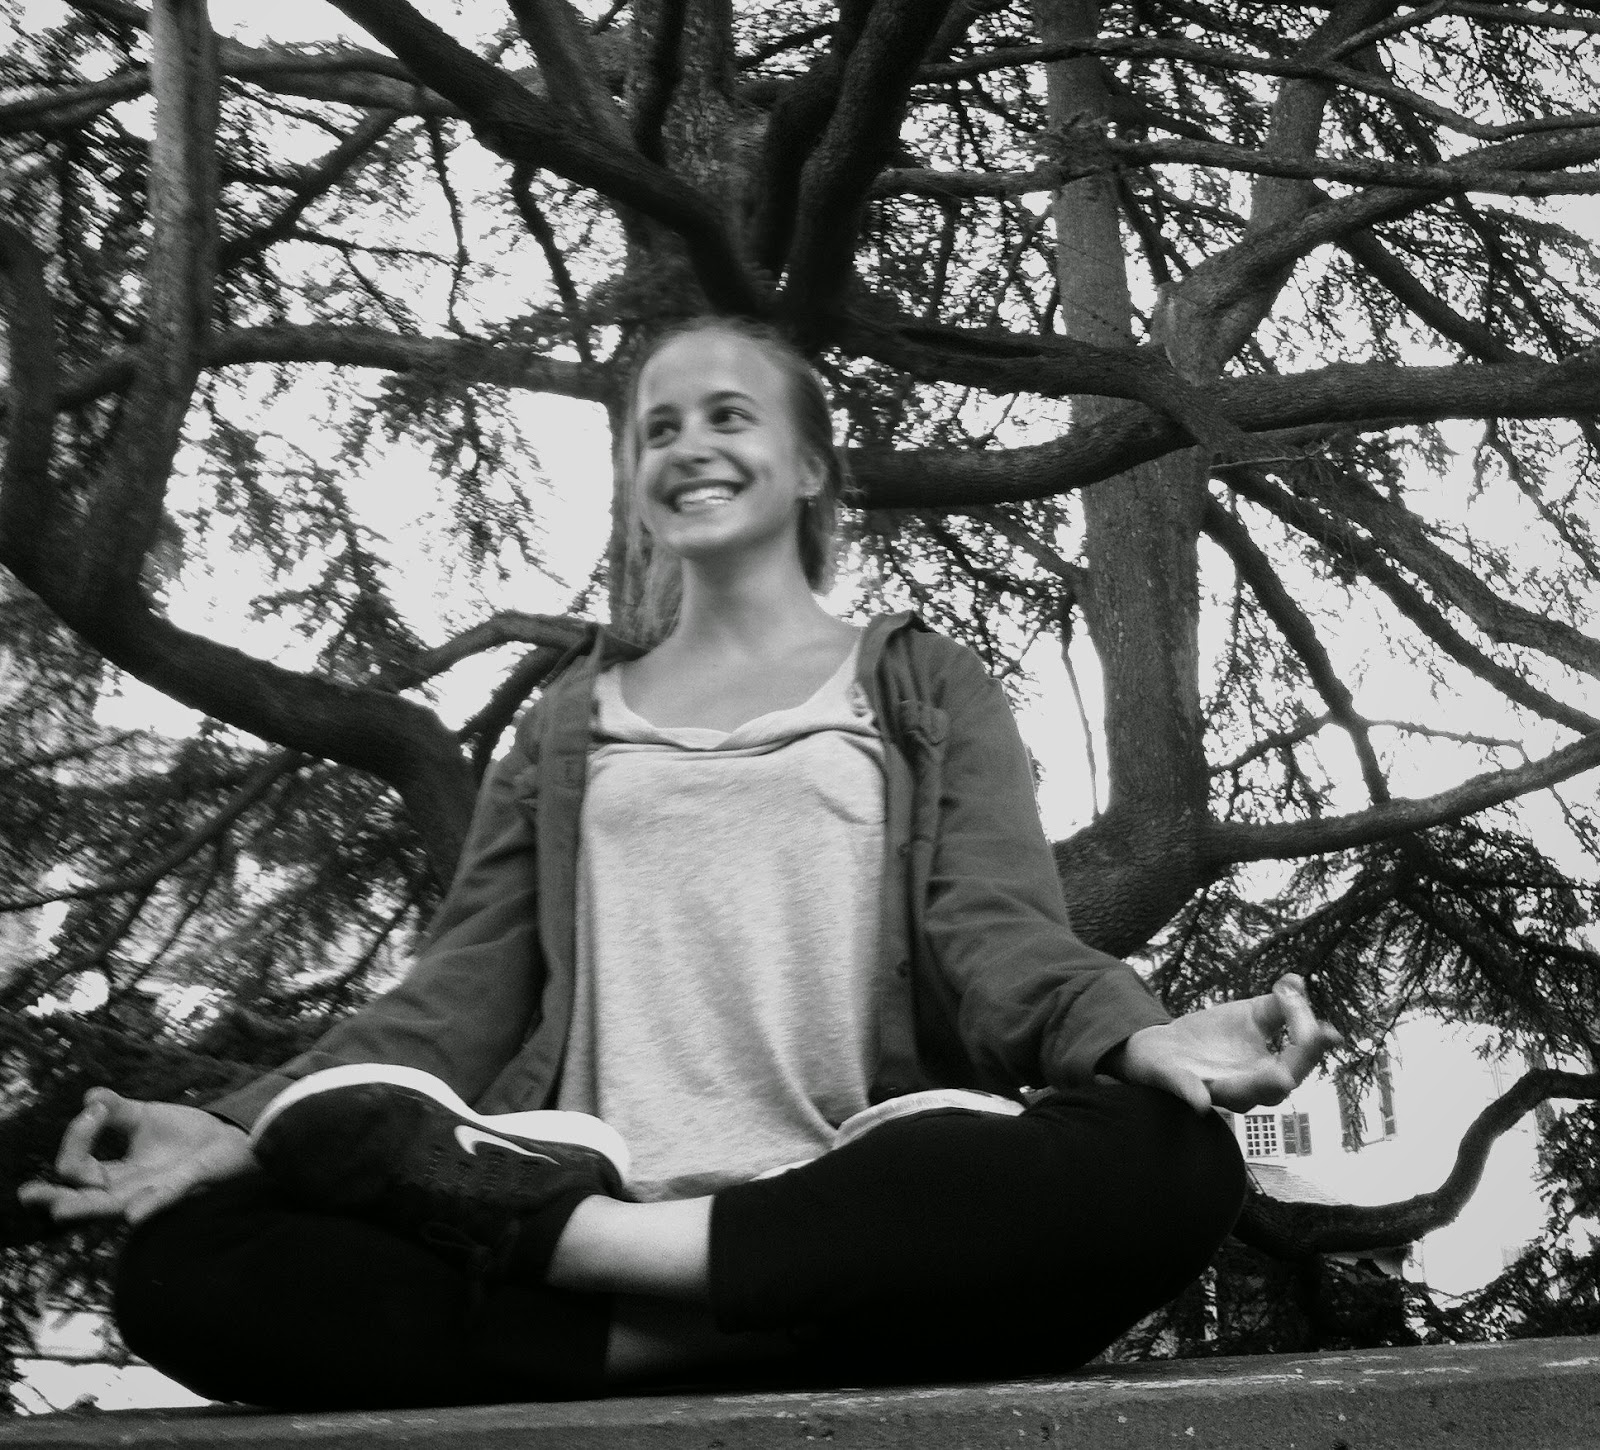 ashtanga yoga paris beautiful essays by an ashtanga teacher to share your inspiring work in these essays she explains what ashtanga is from her personal experience and how the practice and the teacher training